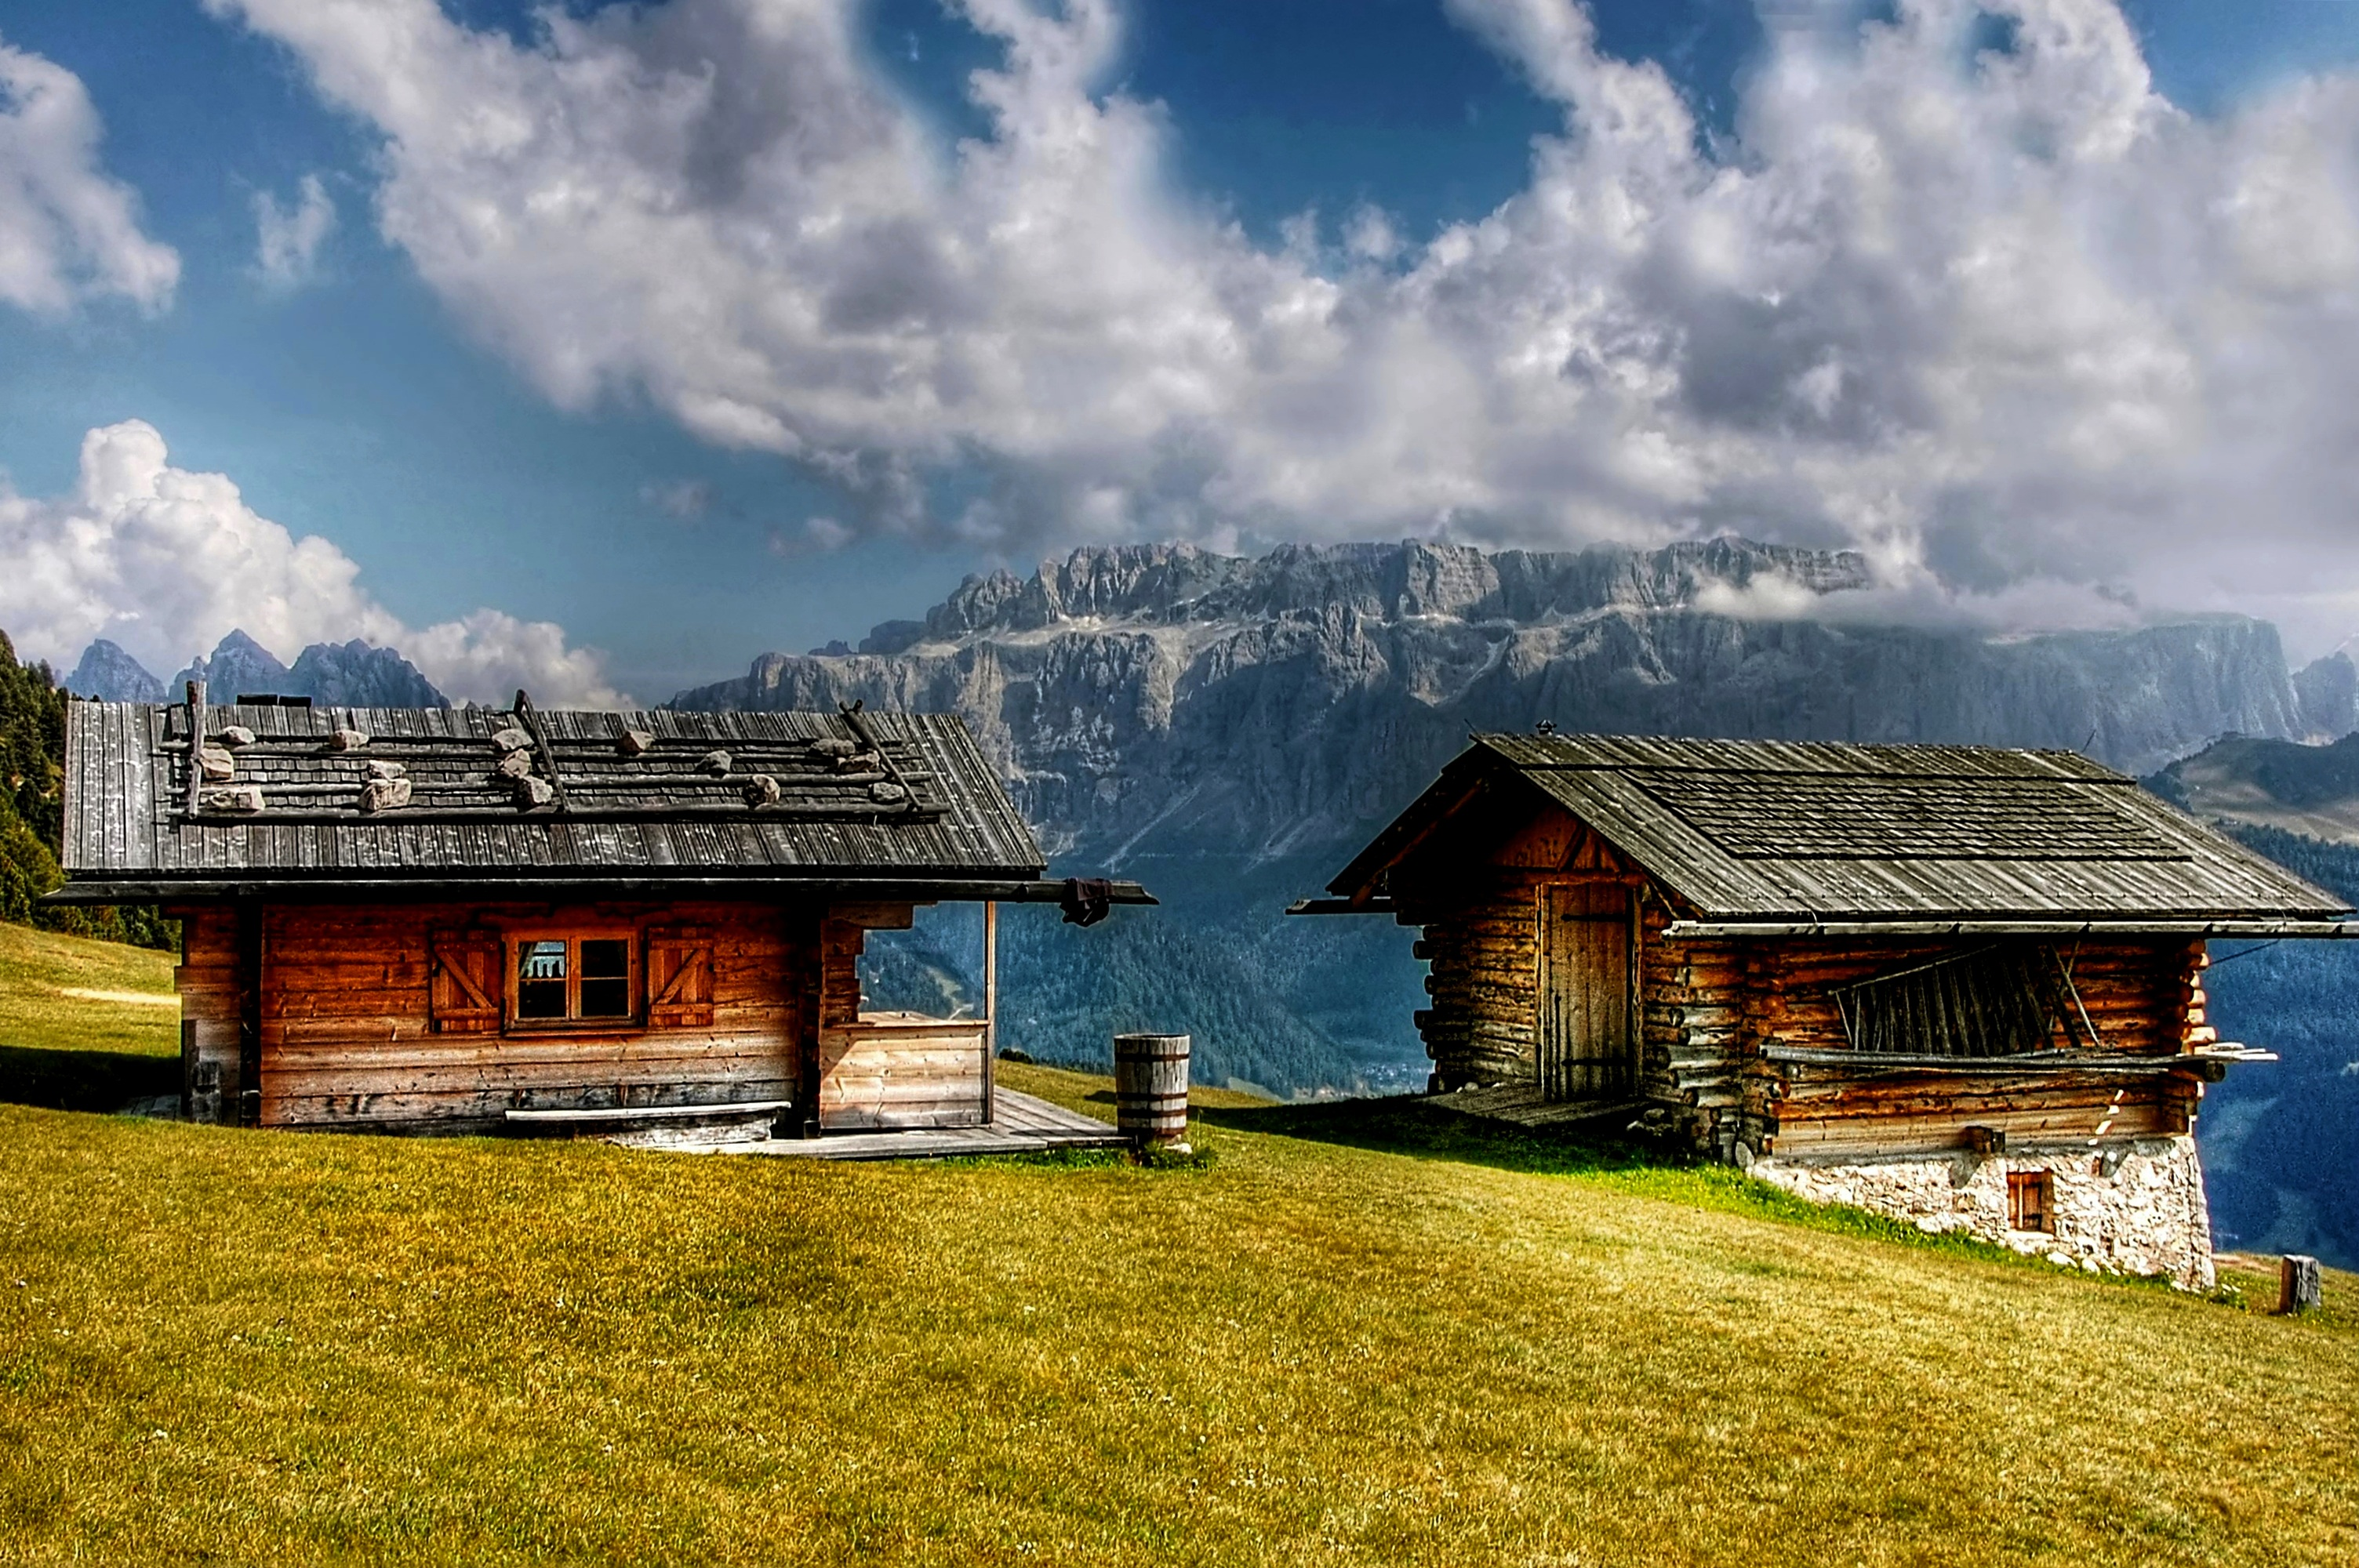 chalet in mountains - staycation. travel trends 2018